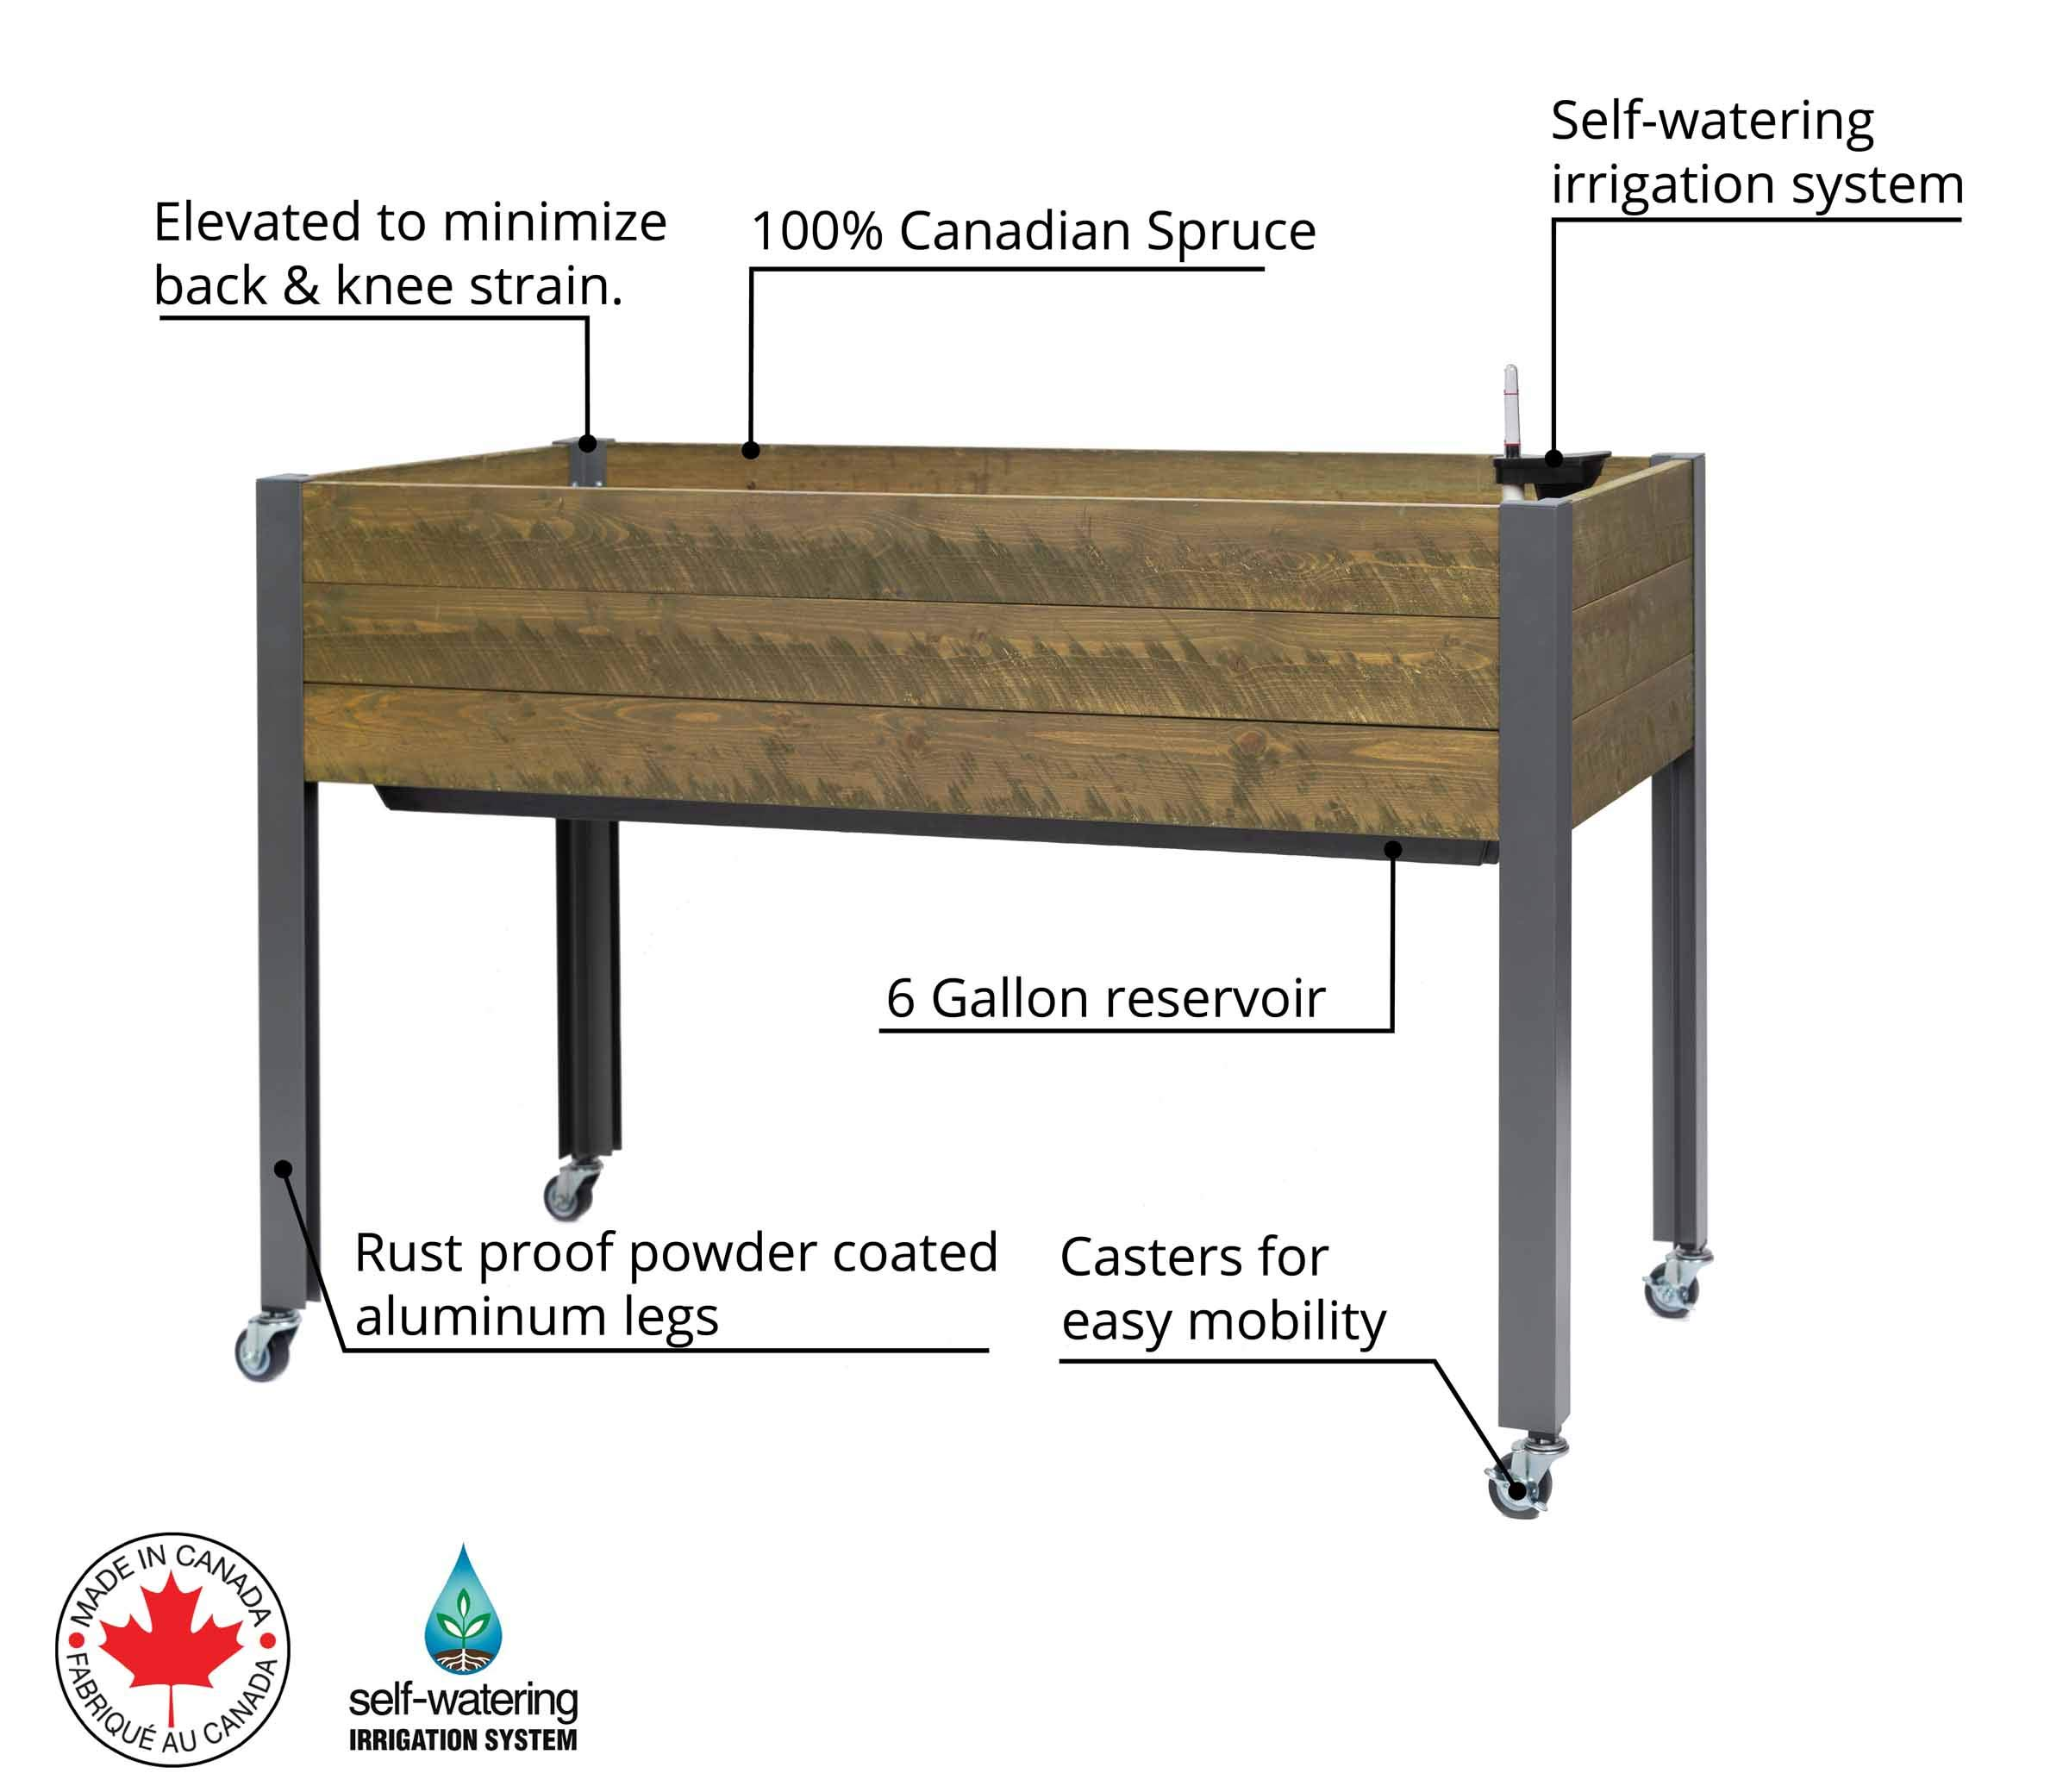 CedarCraft Self-Watering Elevated Spruce Planter (21'' x 47'' x 32''H) - The Flexibility of Container Gardening + The Convenience of a self-Watering System. Grow Healthier, More Productive Plants. by CedarCraft (Image #2)